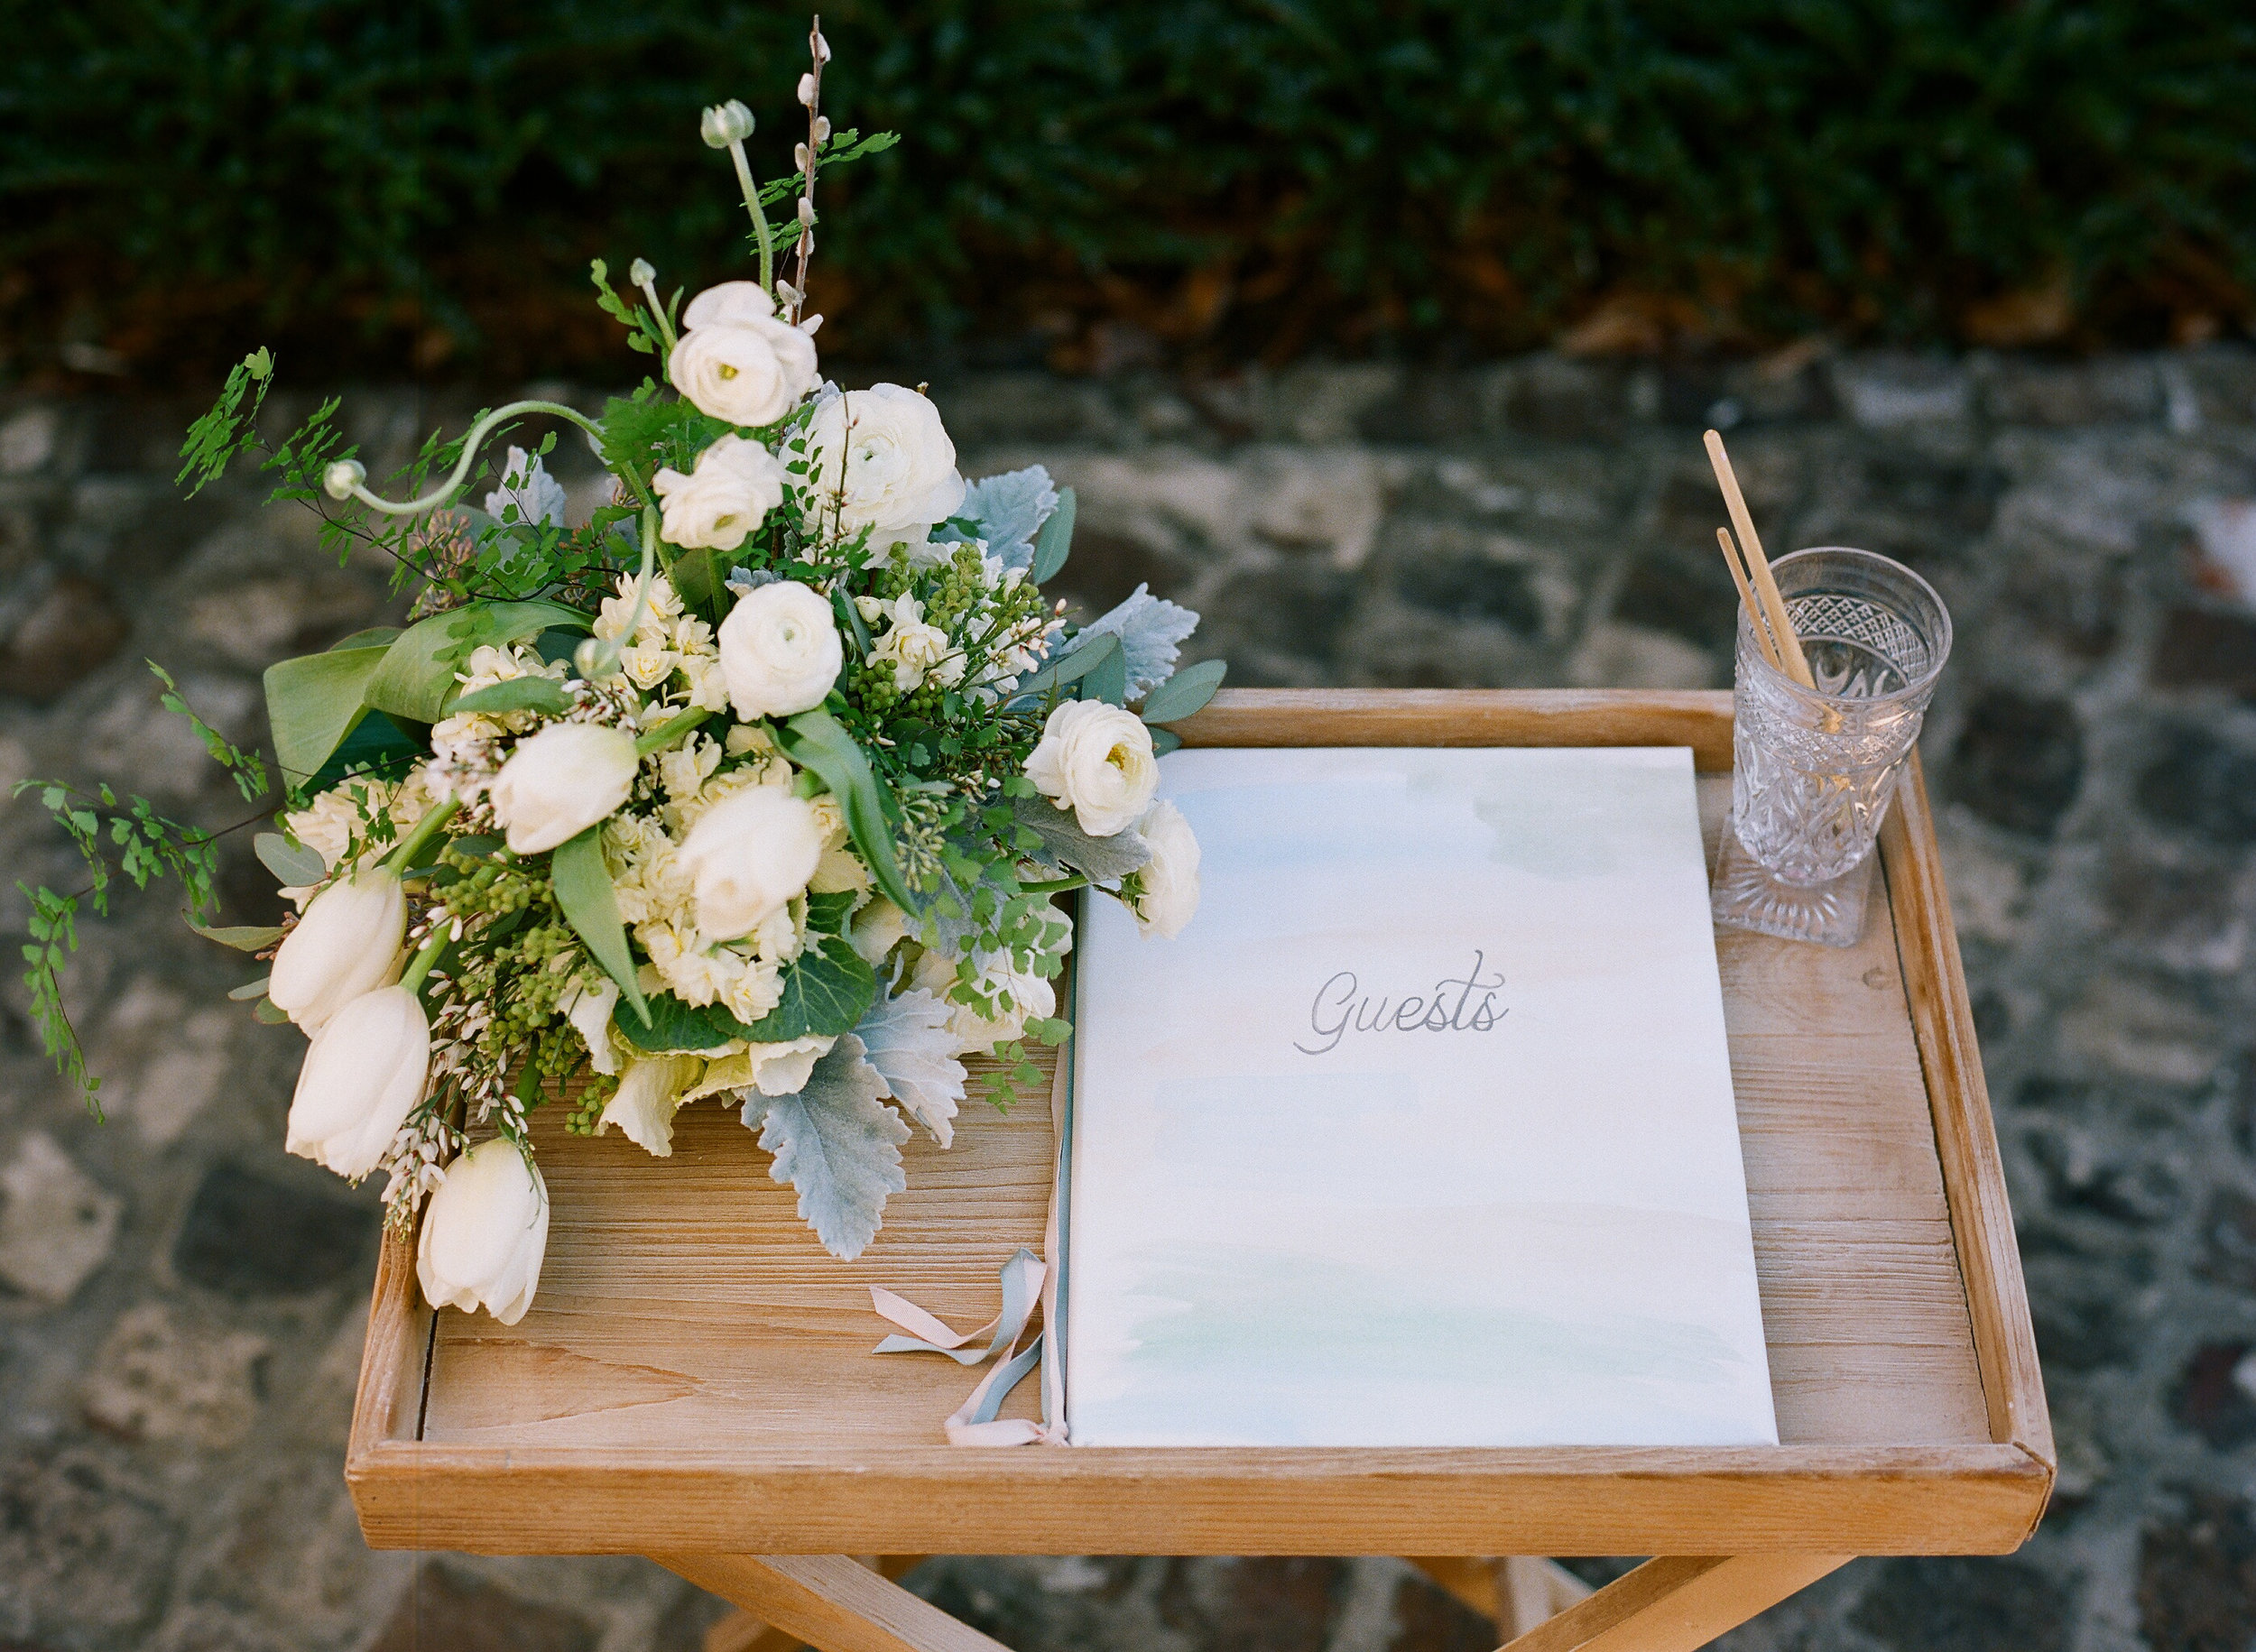 Simply-Charming-Socials_Atlanta-Wedding-Planner_Styled-Photo-Shoot_Style-Me-Pretty_Occasions-Magazine_Buffy-Dekmar-Photography_Velveteen-Rabbit-Baby-Shower_3.JPG